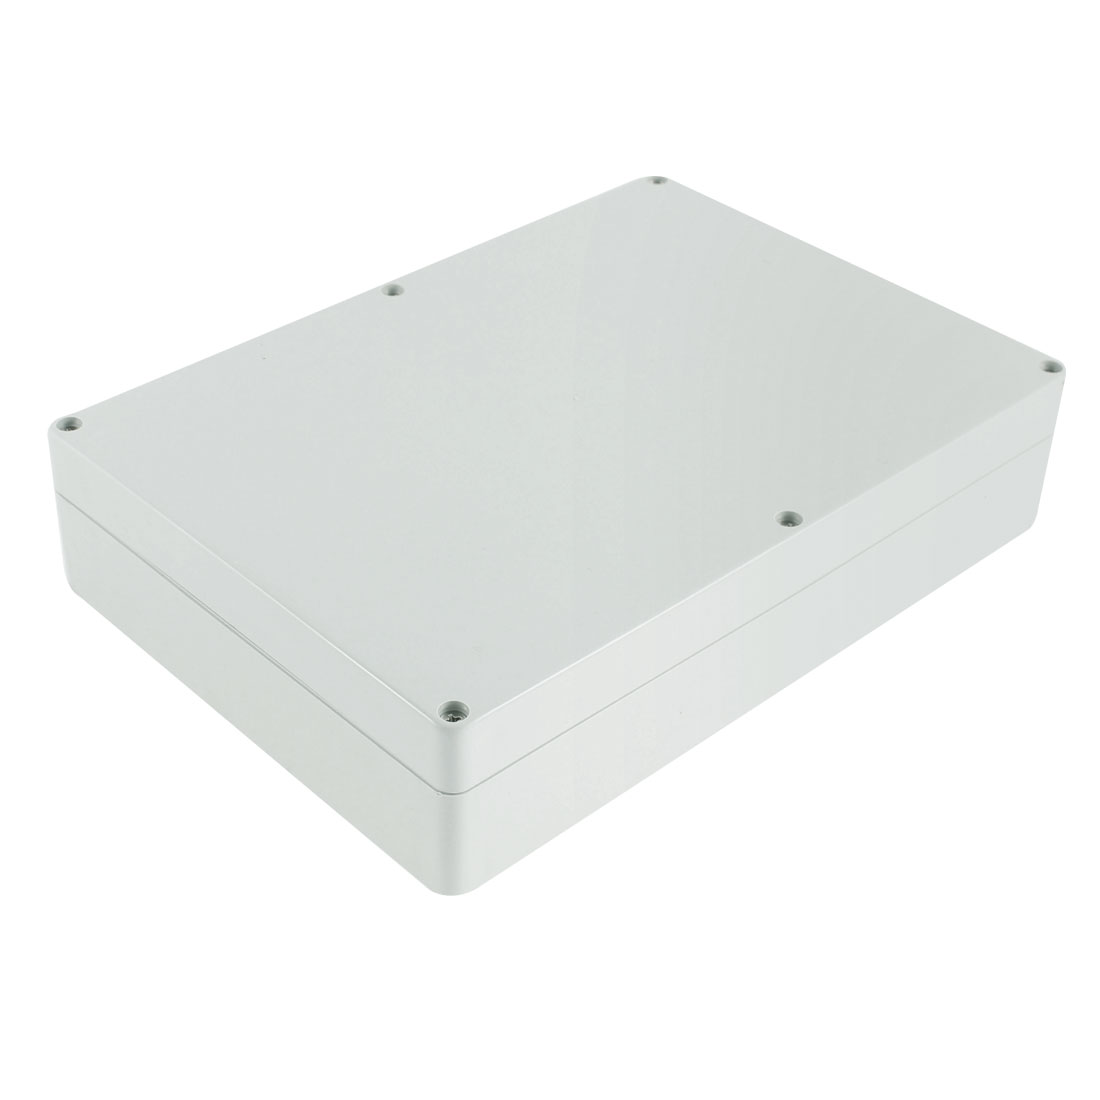 Plastic Electronic Project Junction Box Enclosure Case with Screws 262 x 182 x 60mm